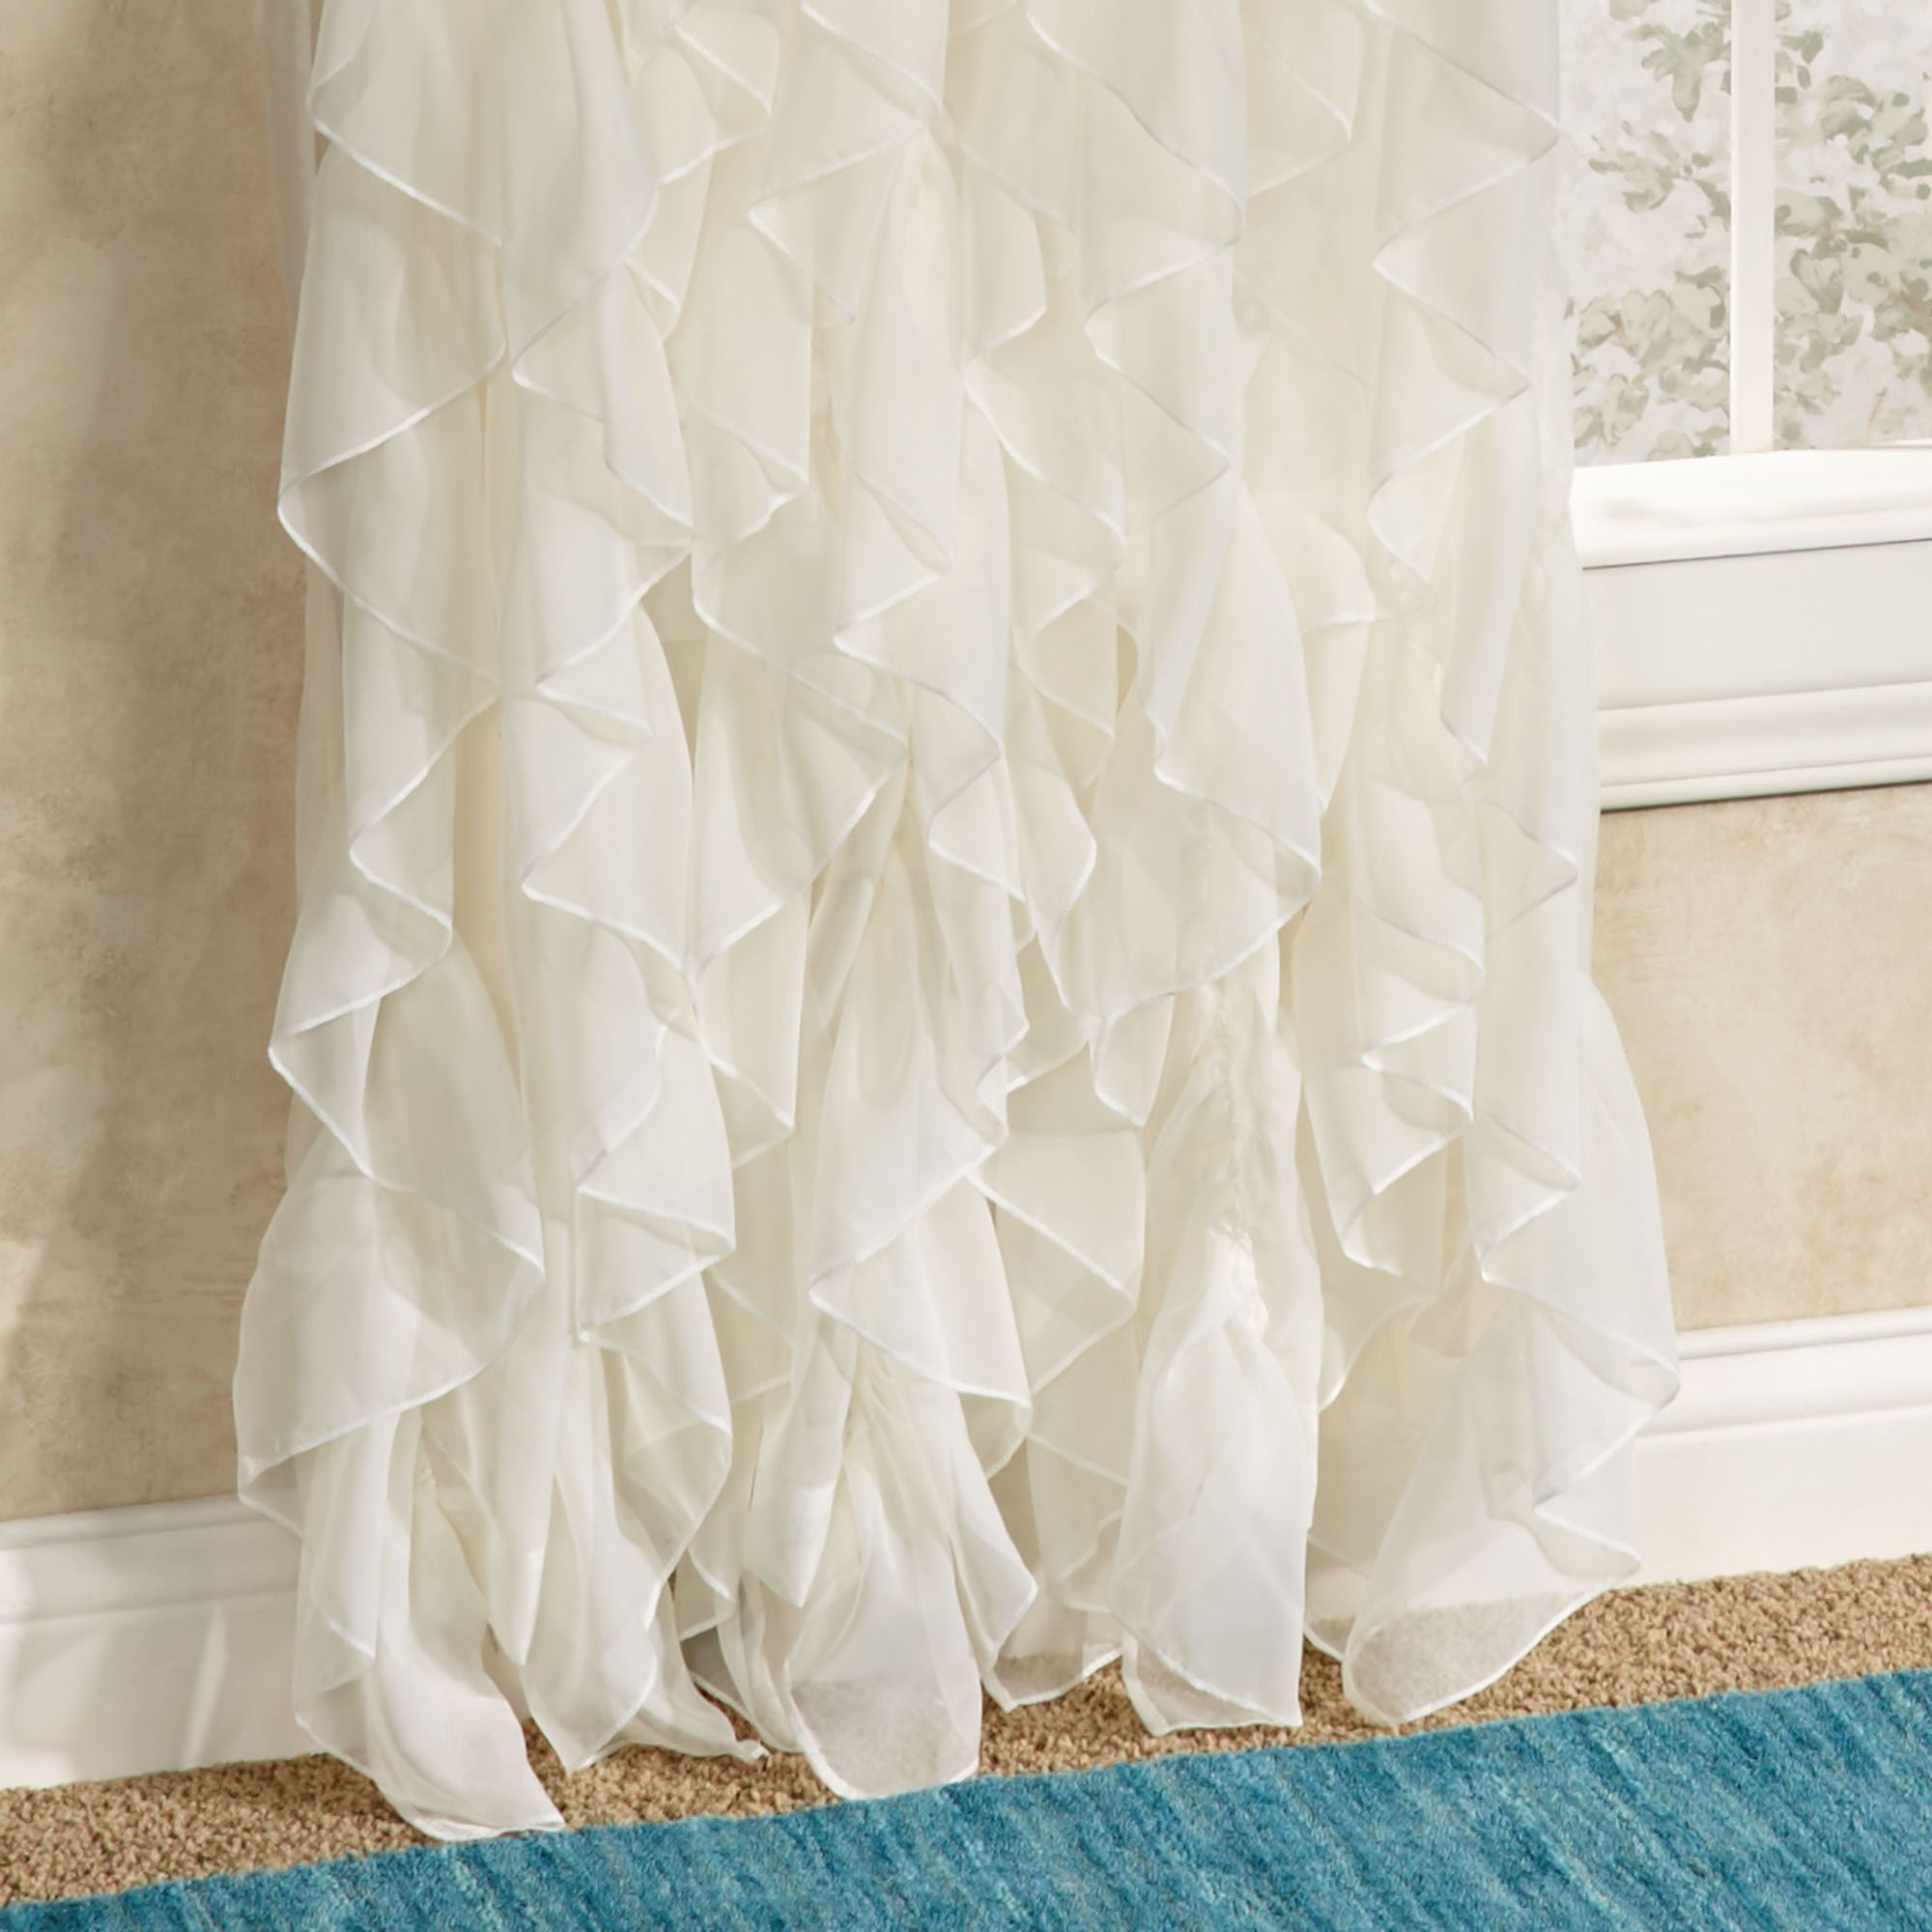 fire x curtains collection curtain ivr premium products voil panels retardant sheer cur panel ivory backdrop organza